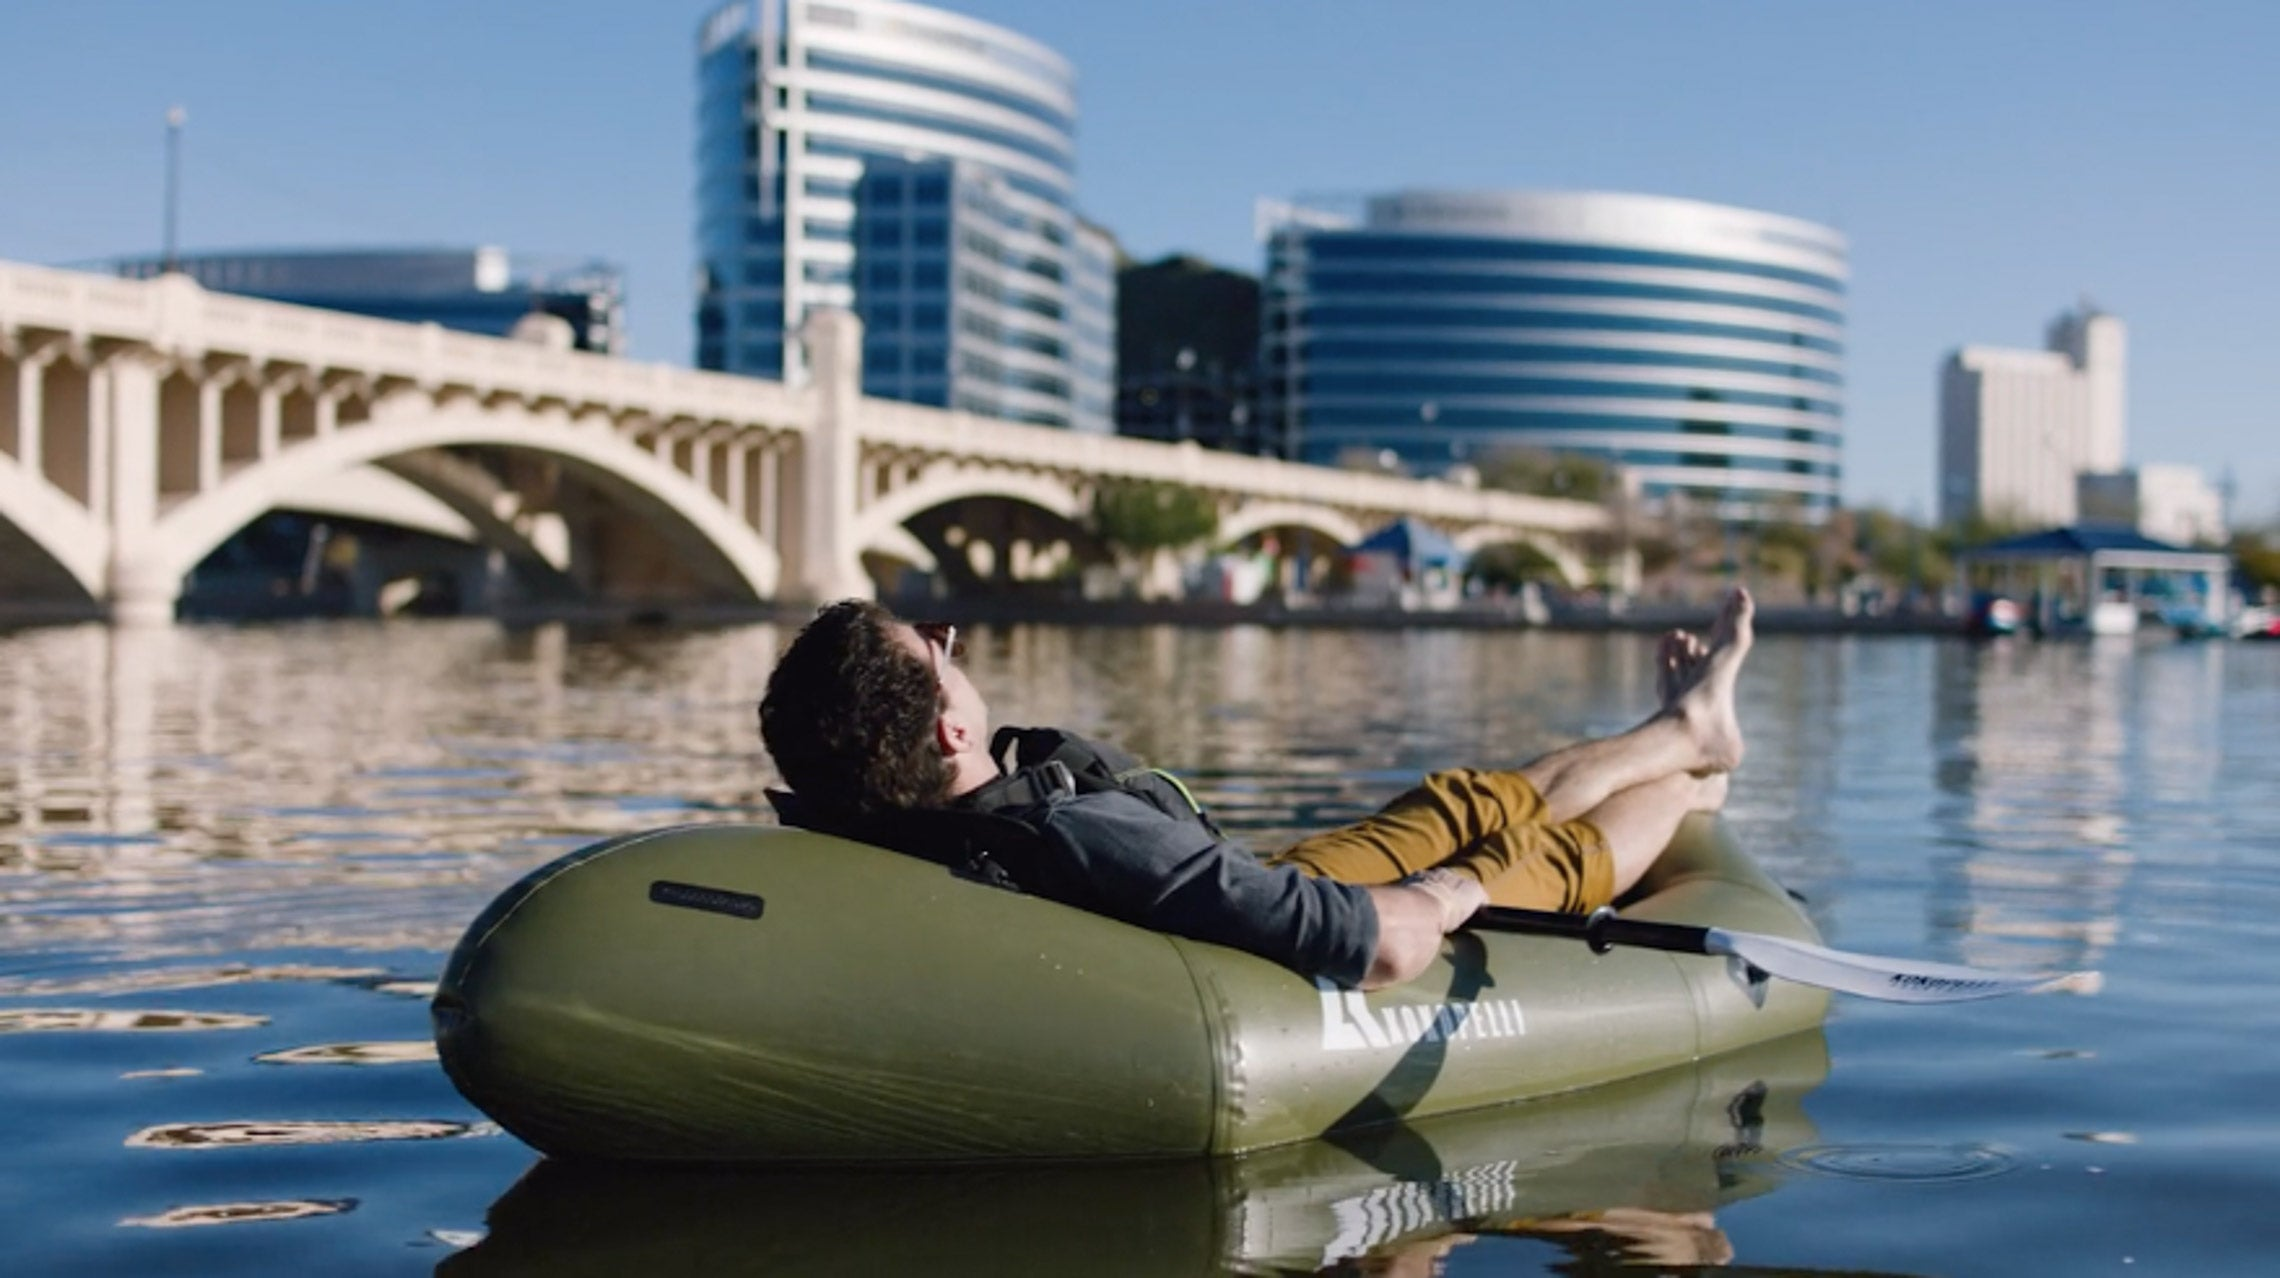 Man laying back in an XPD Kokopelli Packraft on water next to a city